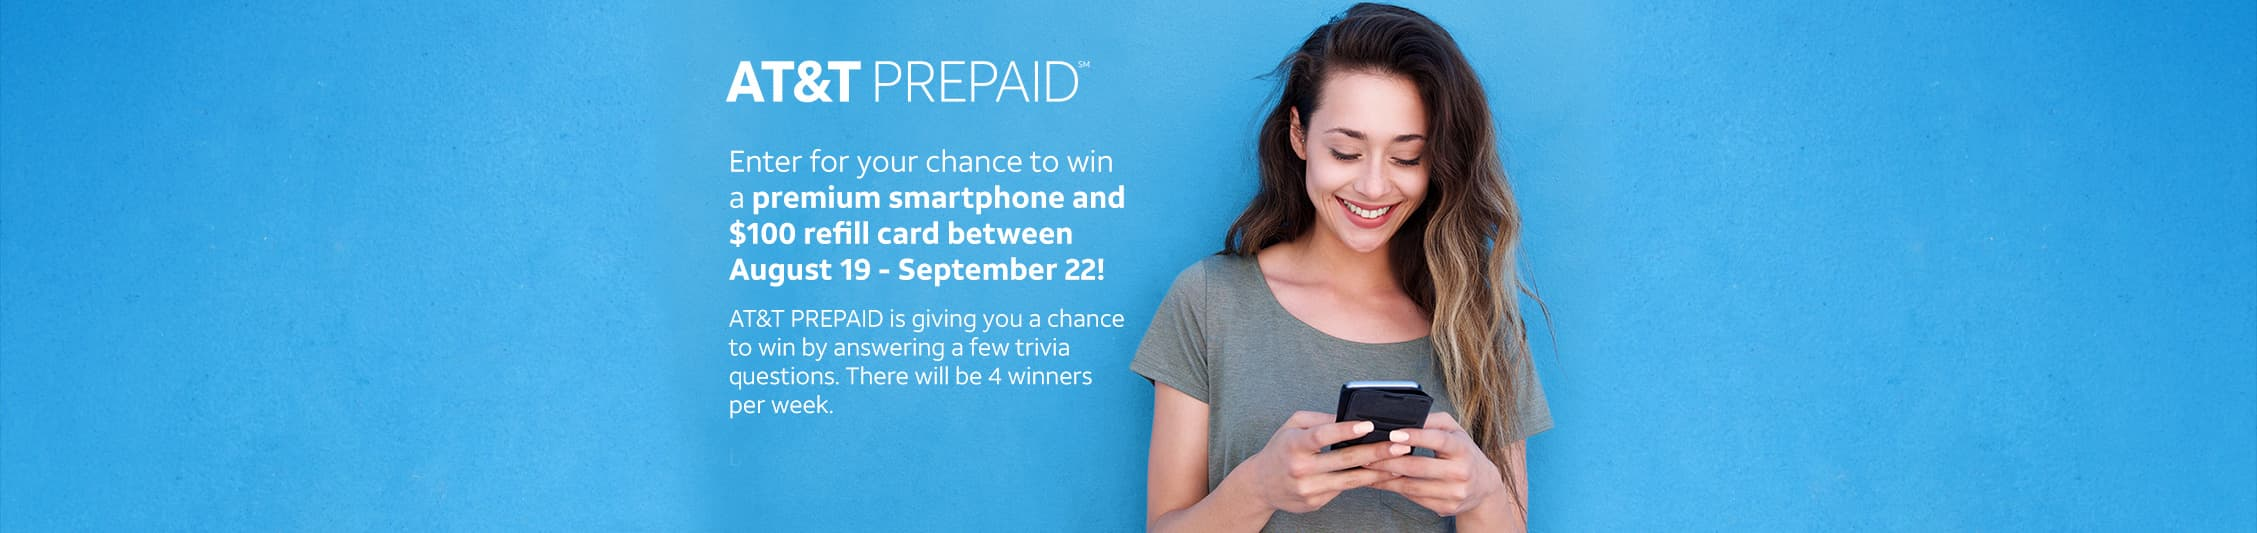 AT&T Prepaid Sweepstakes